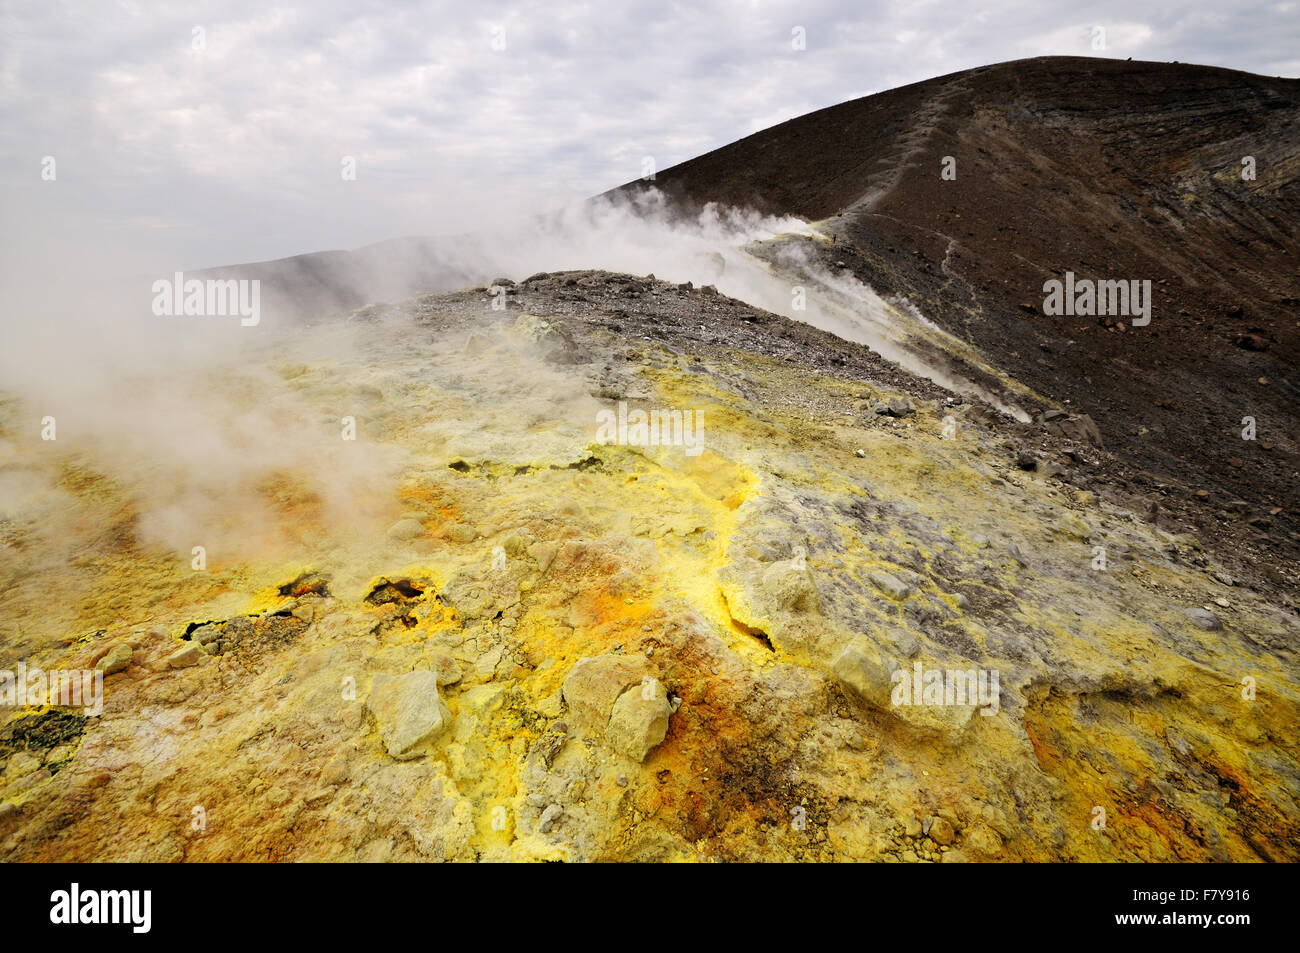 Fumaroles and sulfur in the active crater (Gran Cratere) of Vulcano, Aeolian Islands, Sicily, Italy - Stock Image